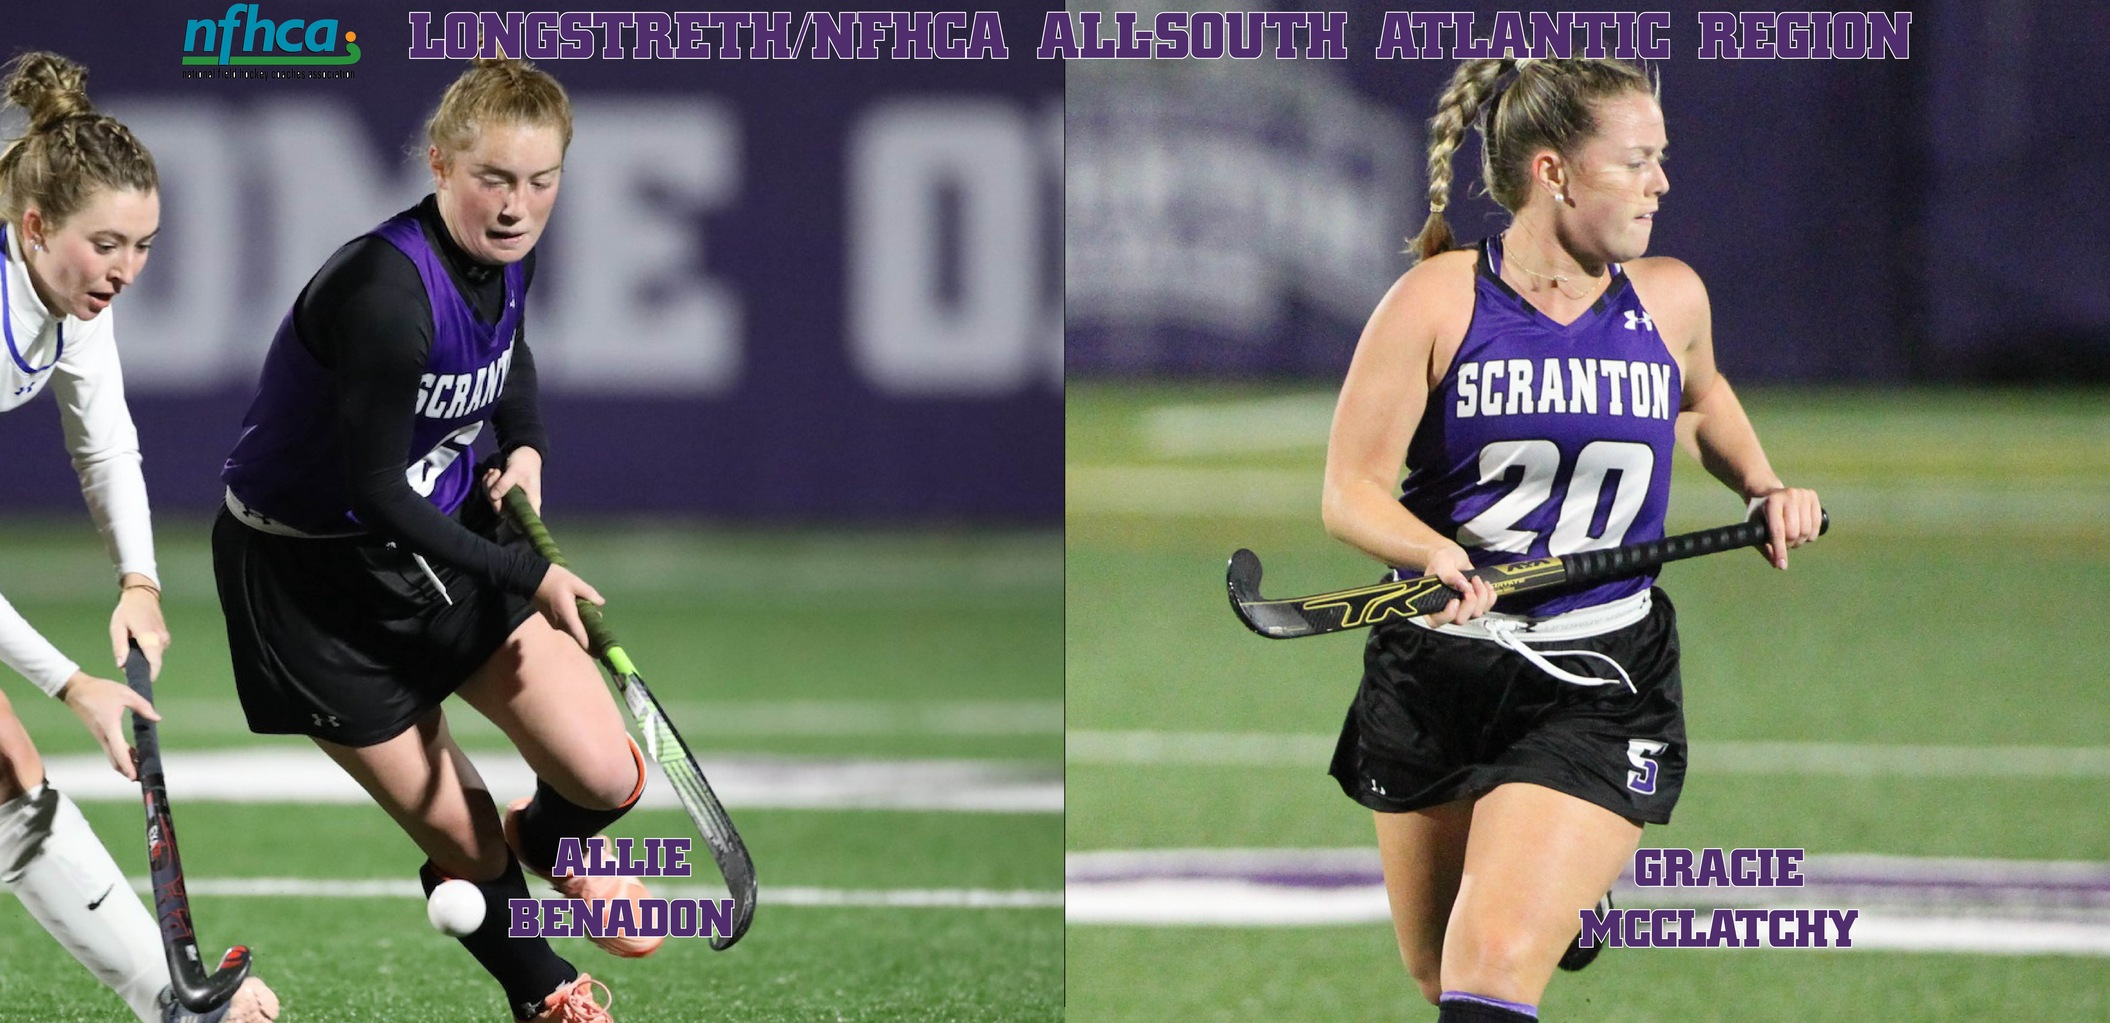 Sophomore Allie Benadon and senior Gracie McClatchy were both named to the Longstreth/NFHCA All-South Atlantic Region Second Team on Tuesday.